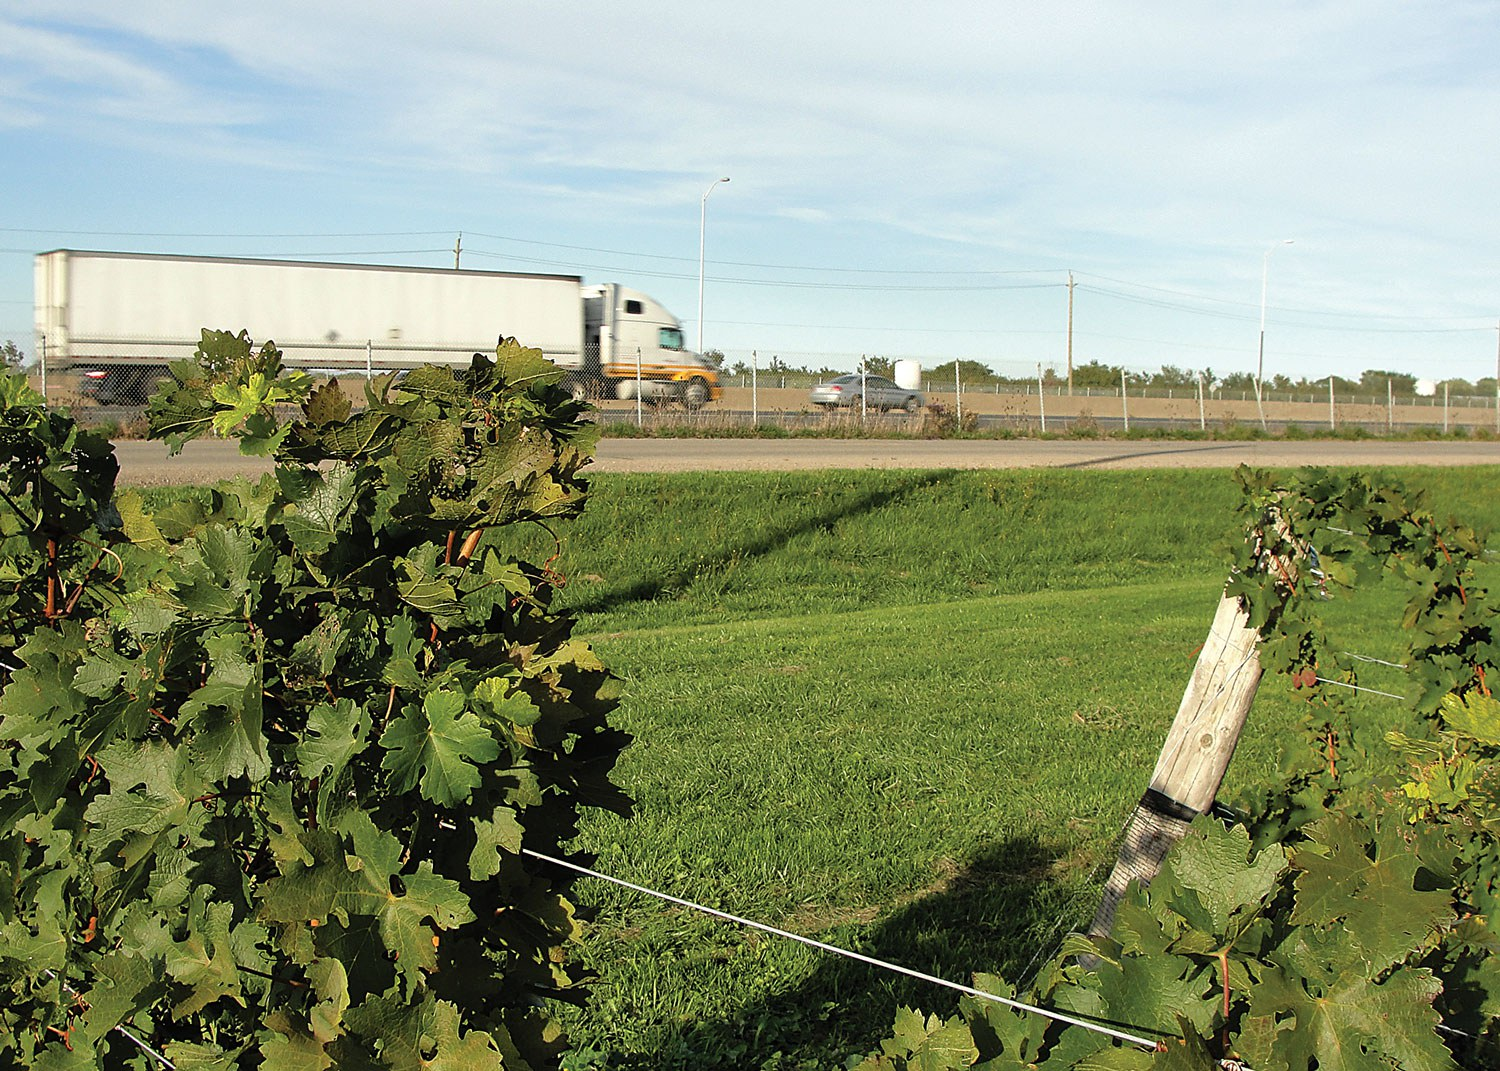 Arable land competes with infrastructure, as seen here with this vineyard nestled in the Twenty Valley region of the Niagara Peninsula, coexisting with the busy six-lane Queen Elizabeth Way near Beamsville.